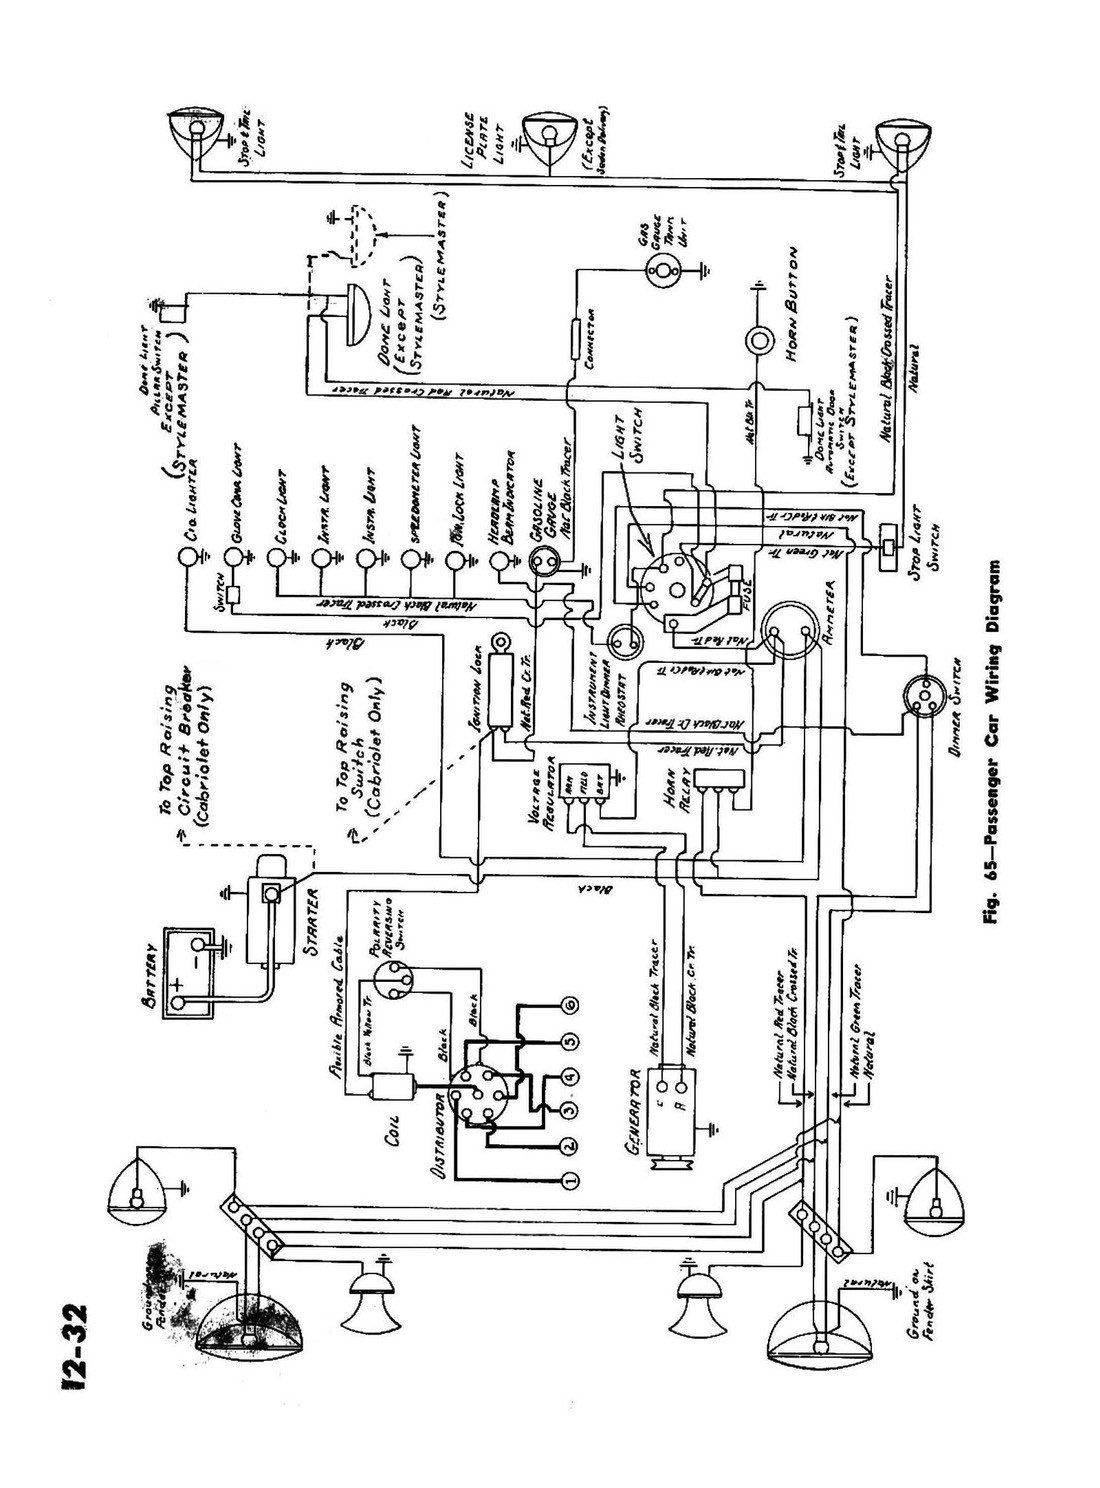 Schematic Diagram Of A Building Wiring Diagram